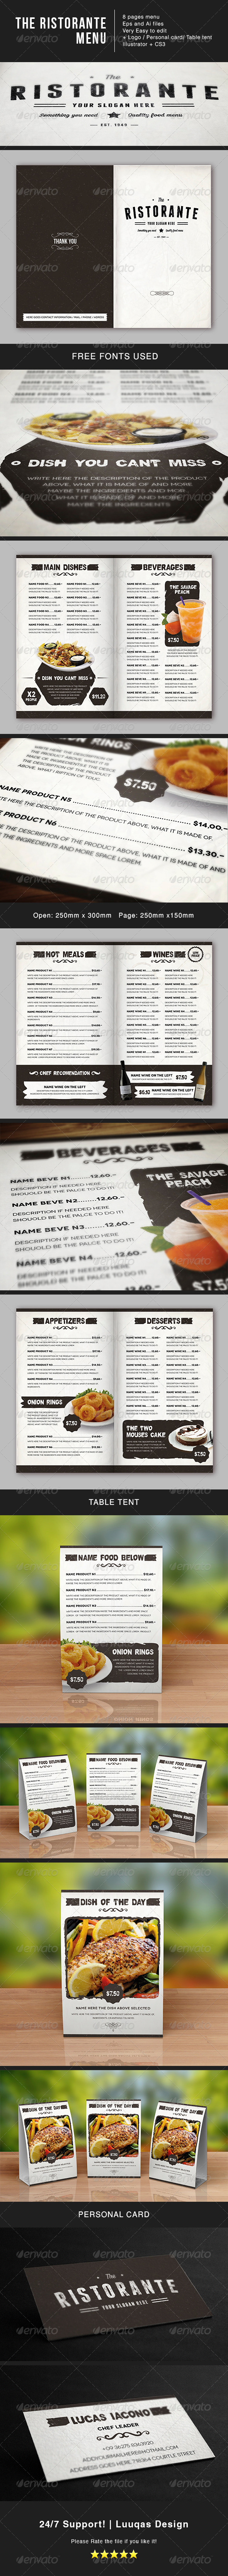 GraphicRiver The Ristorante Food Menu 5831989